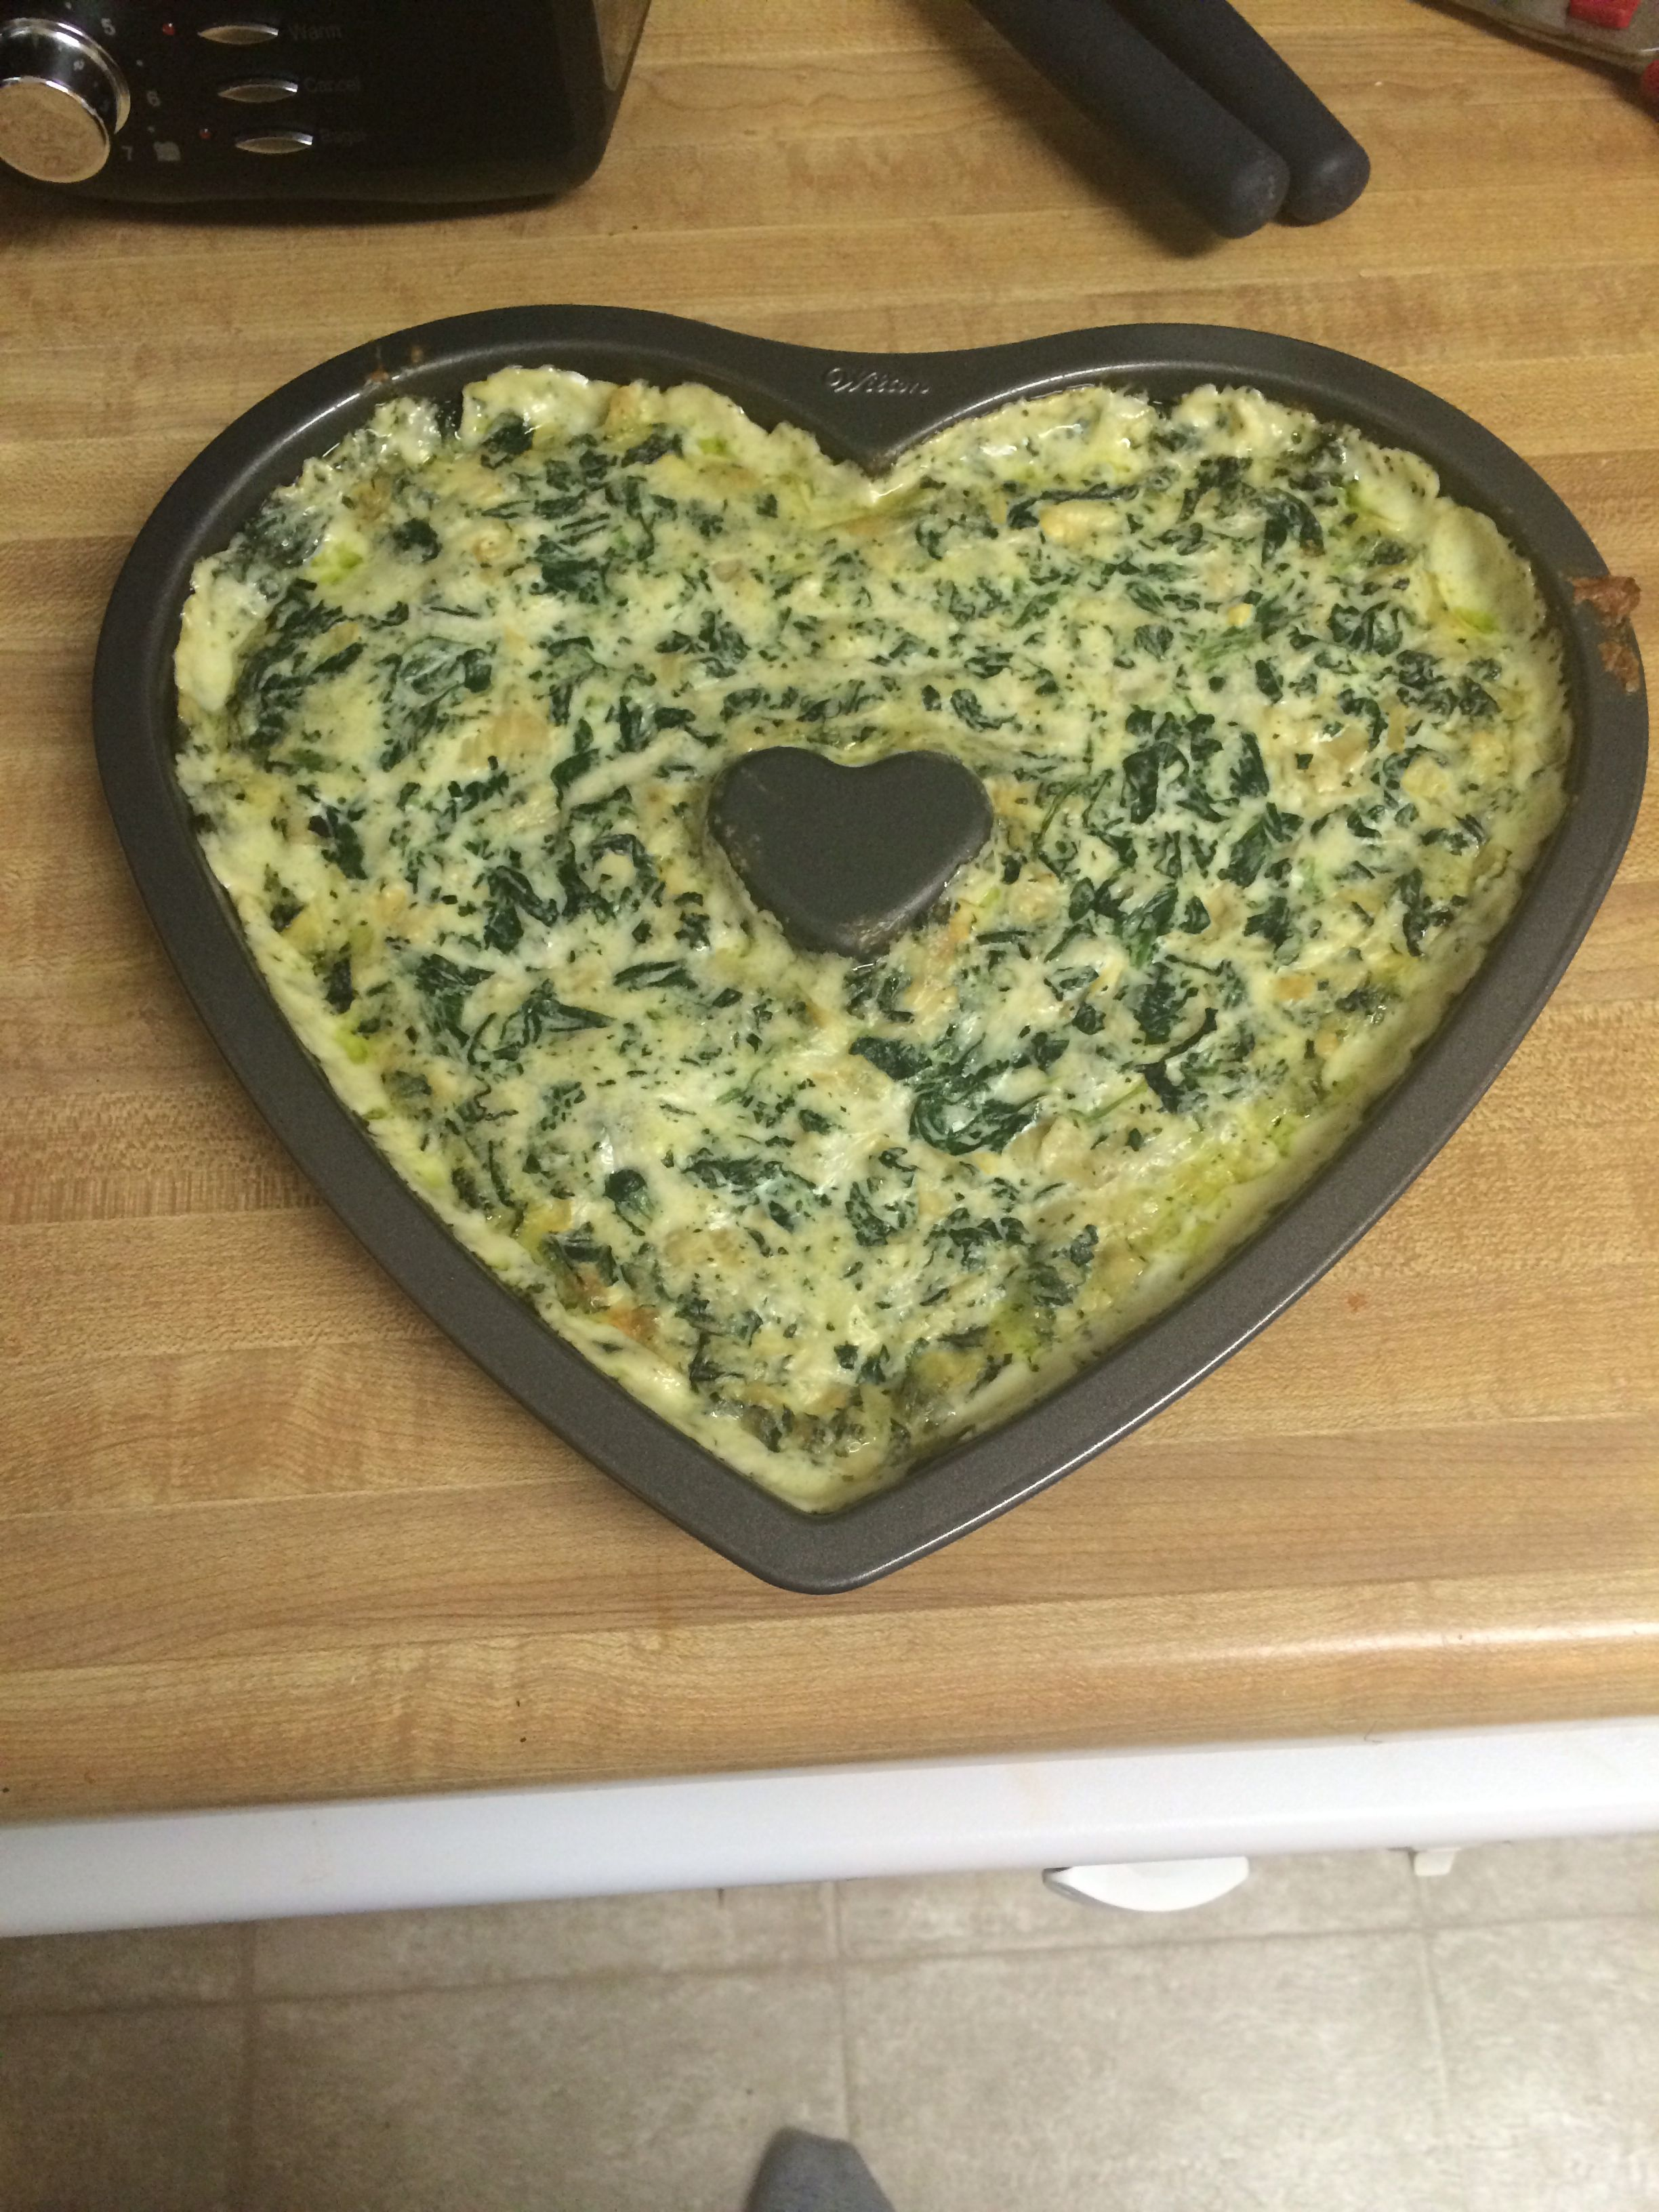 Spinach and artichoke dip made with love!